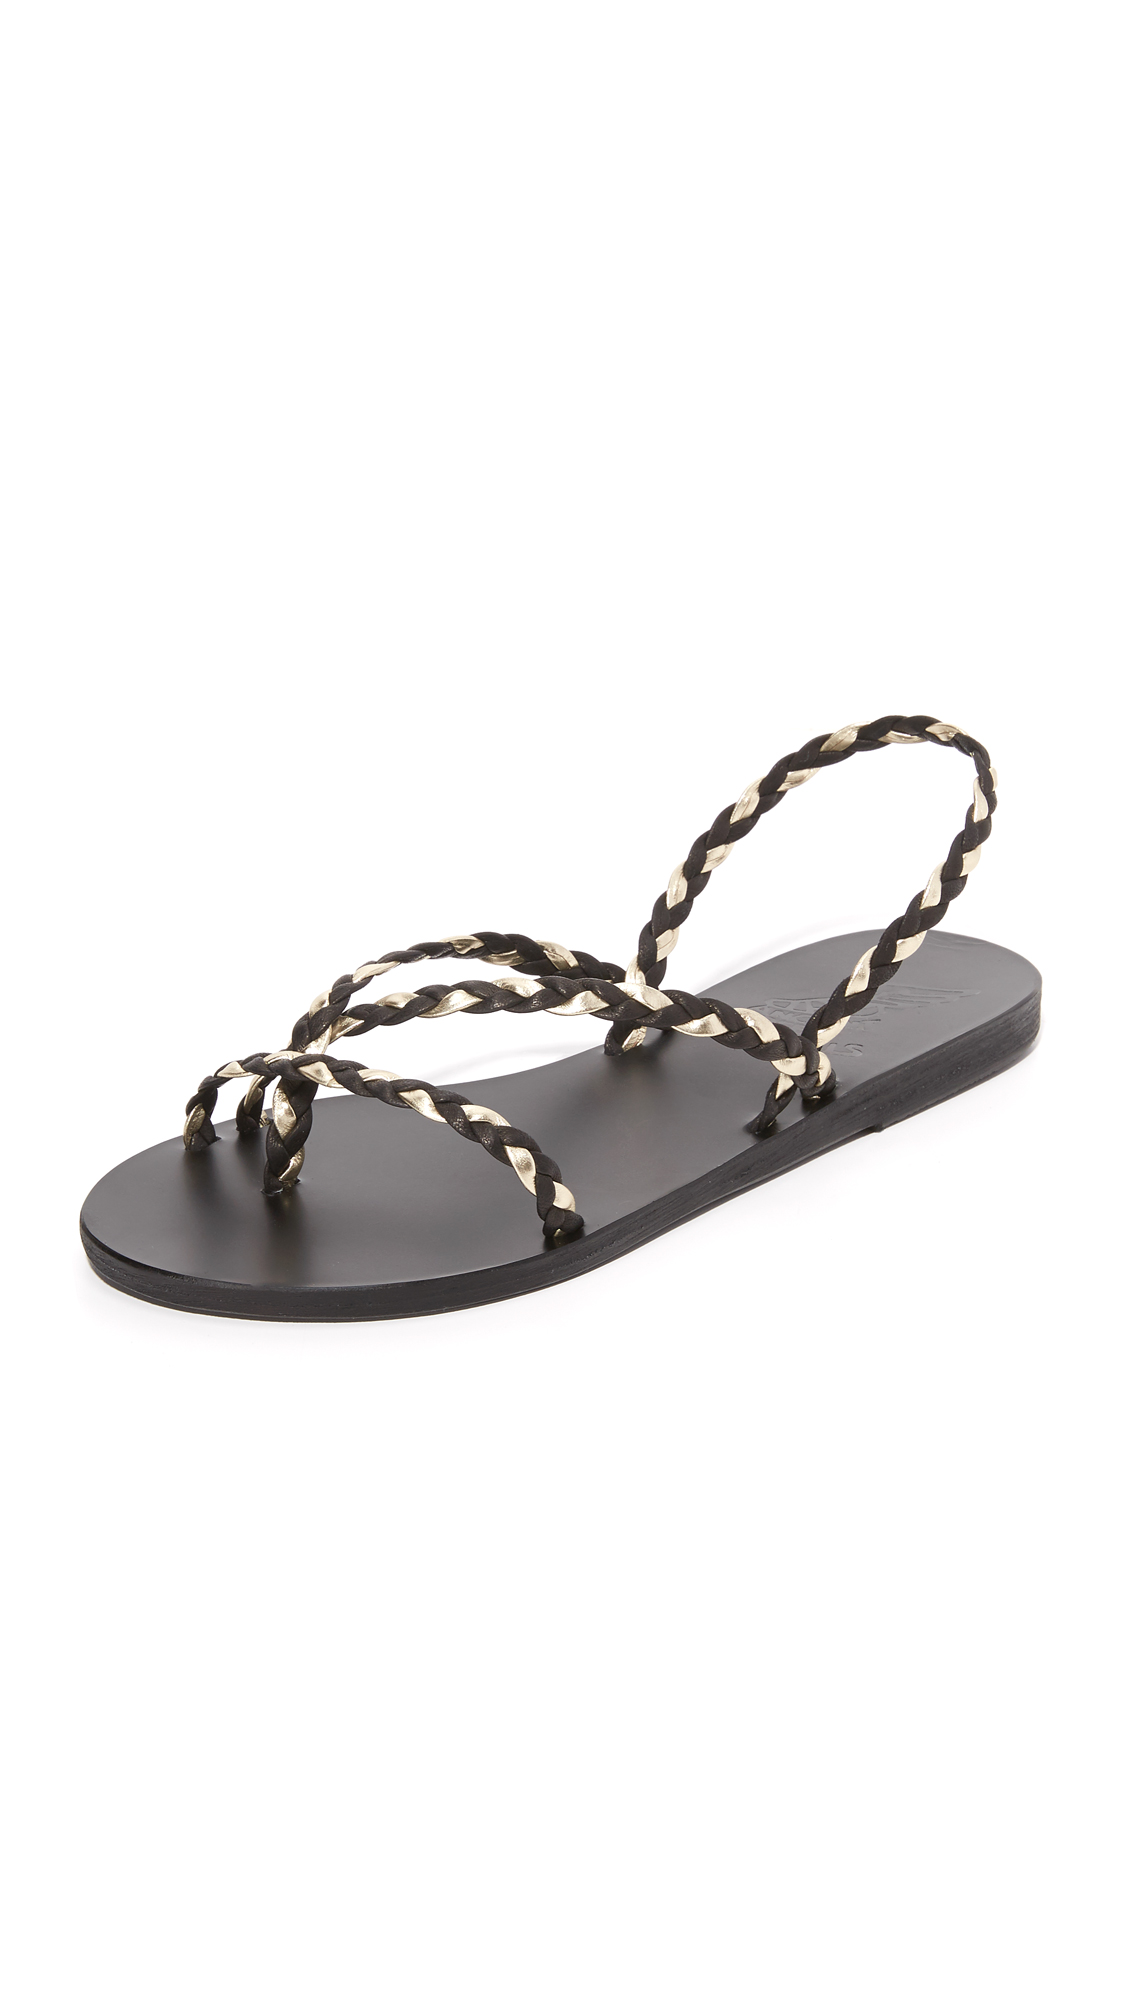 Ancient Greek Sandals Yianna Sandals - Black/Platinum